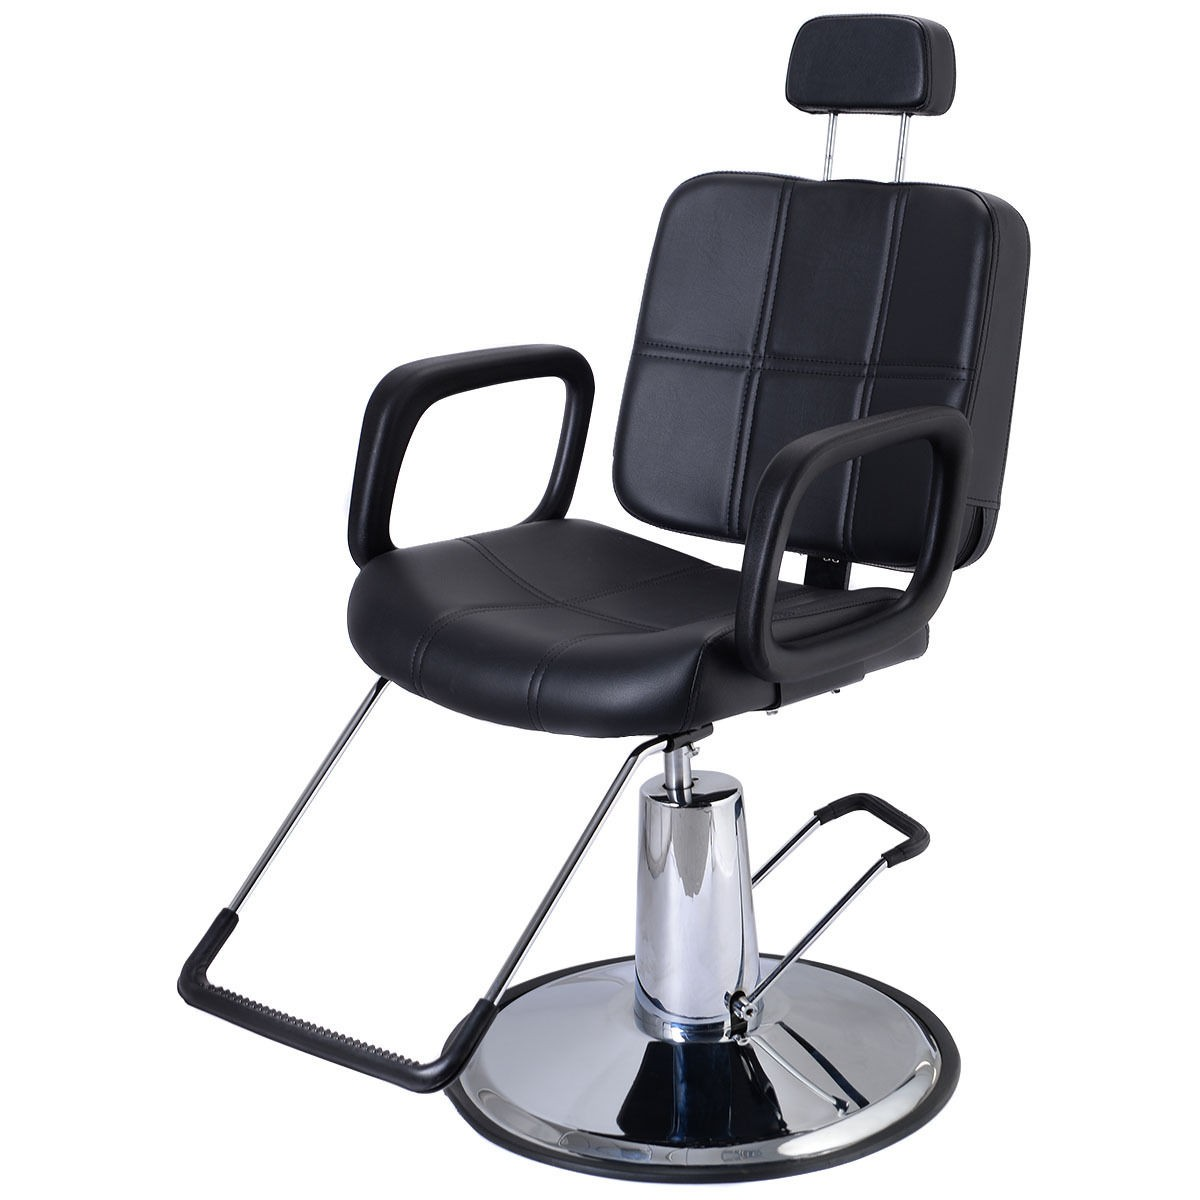 hydraulic hair styling chairs chair cover hire buckinghamshire reclining barber salon beauty spa shampoo